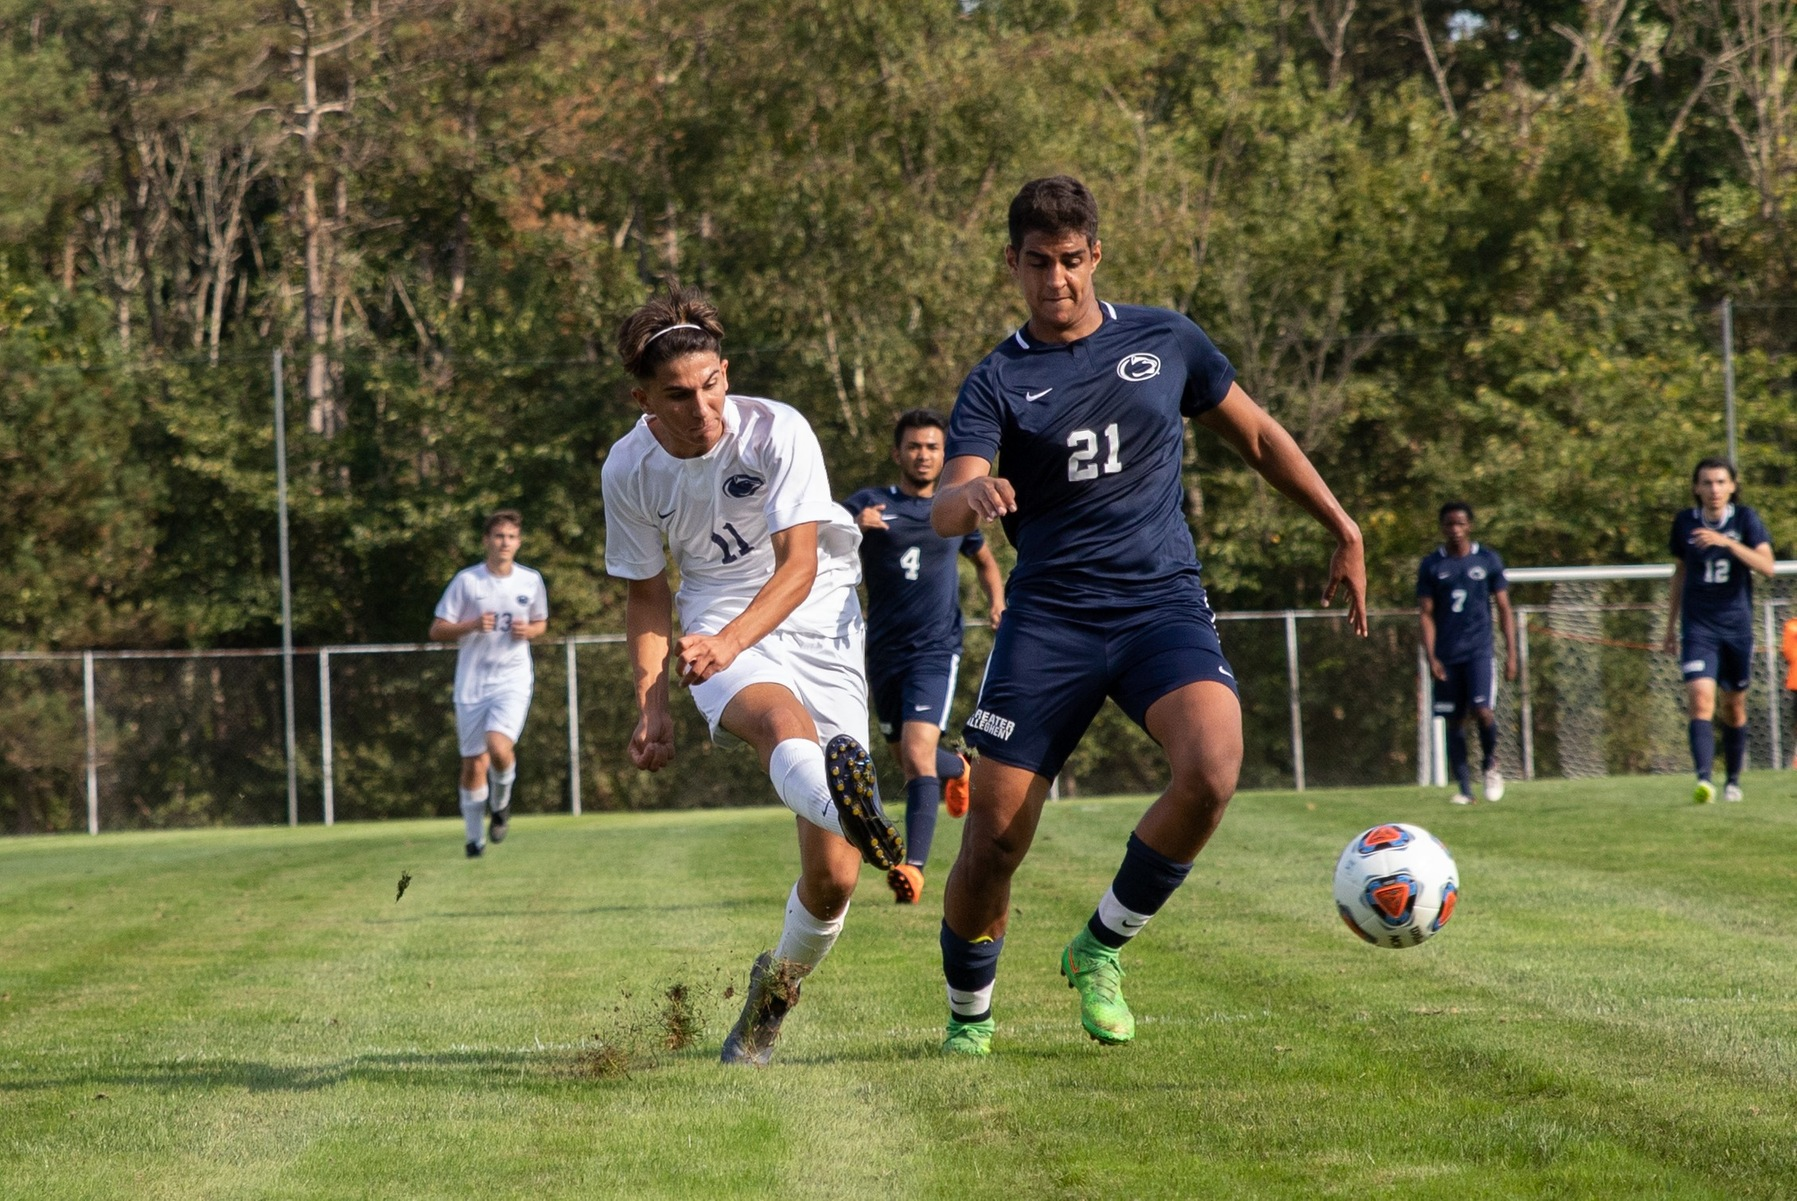 New Kensington Beats Wilkes-Barre in Men's Soccer